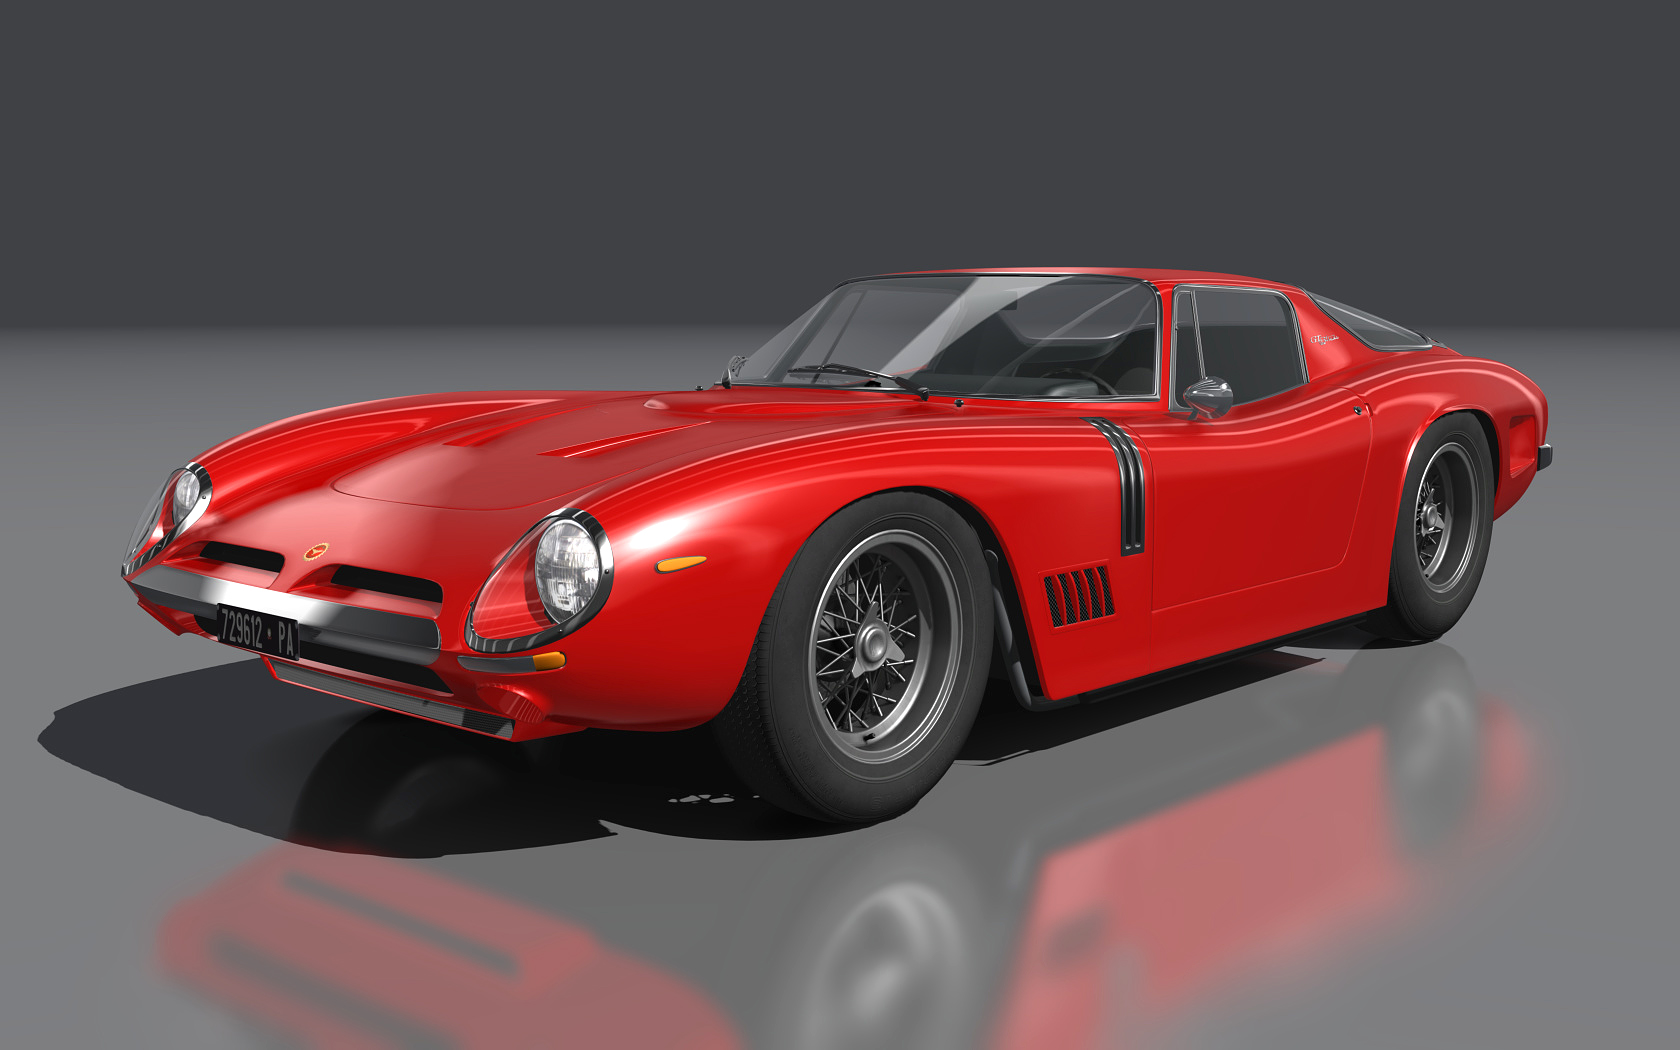 Bizzarrrini GT 5300 Strada car mod for Assetto Corsa